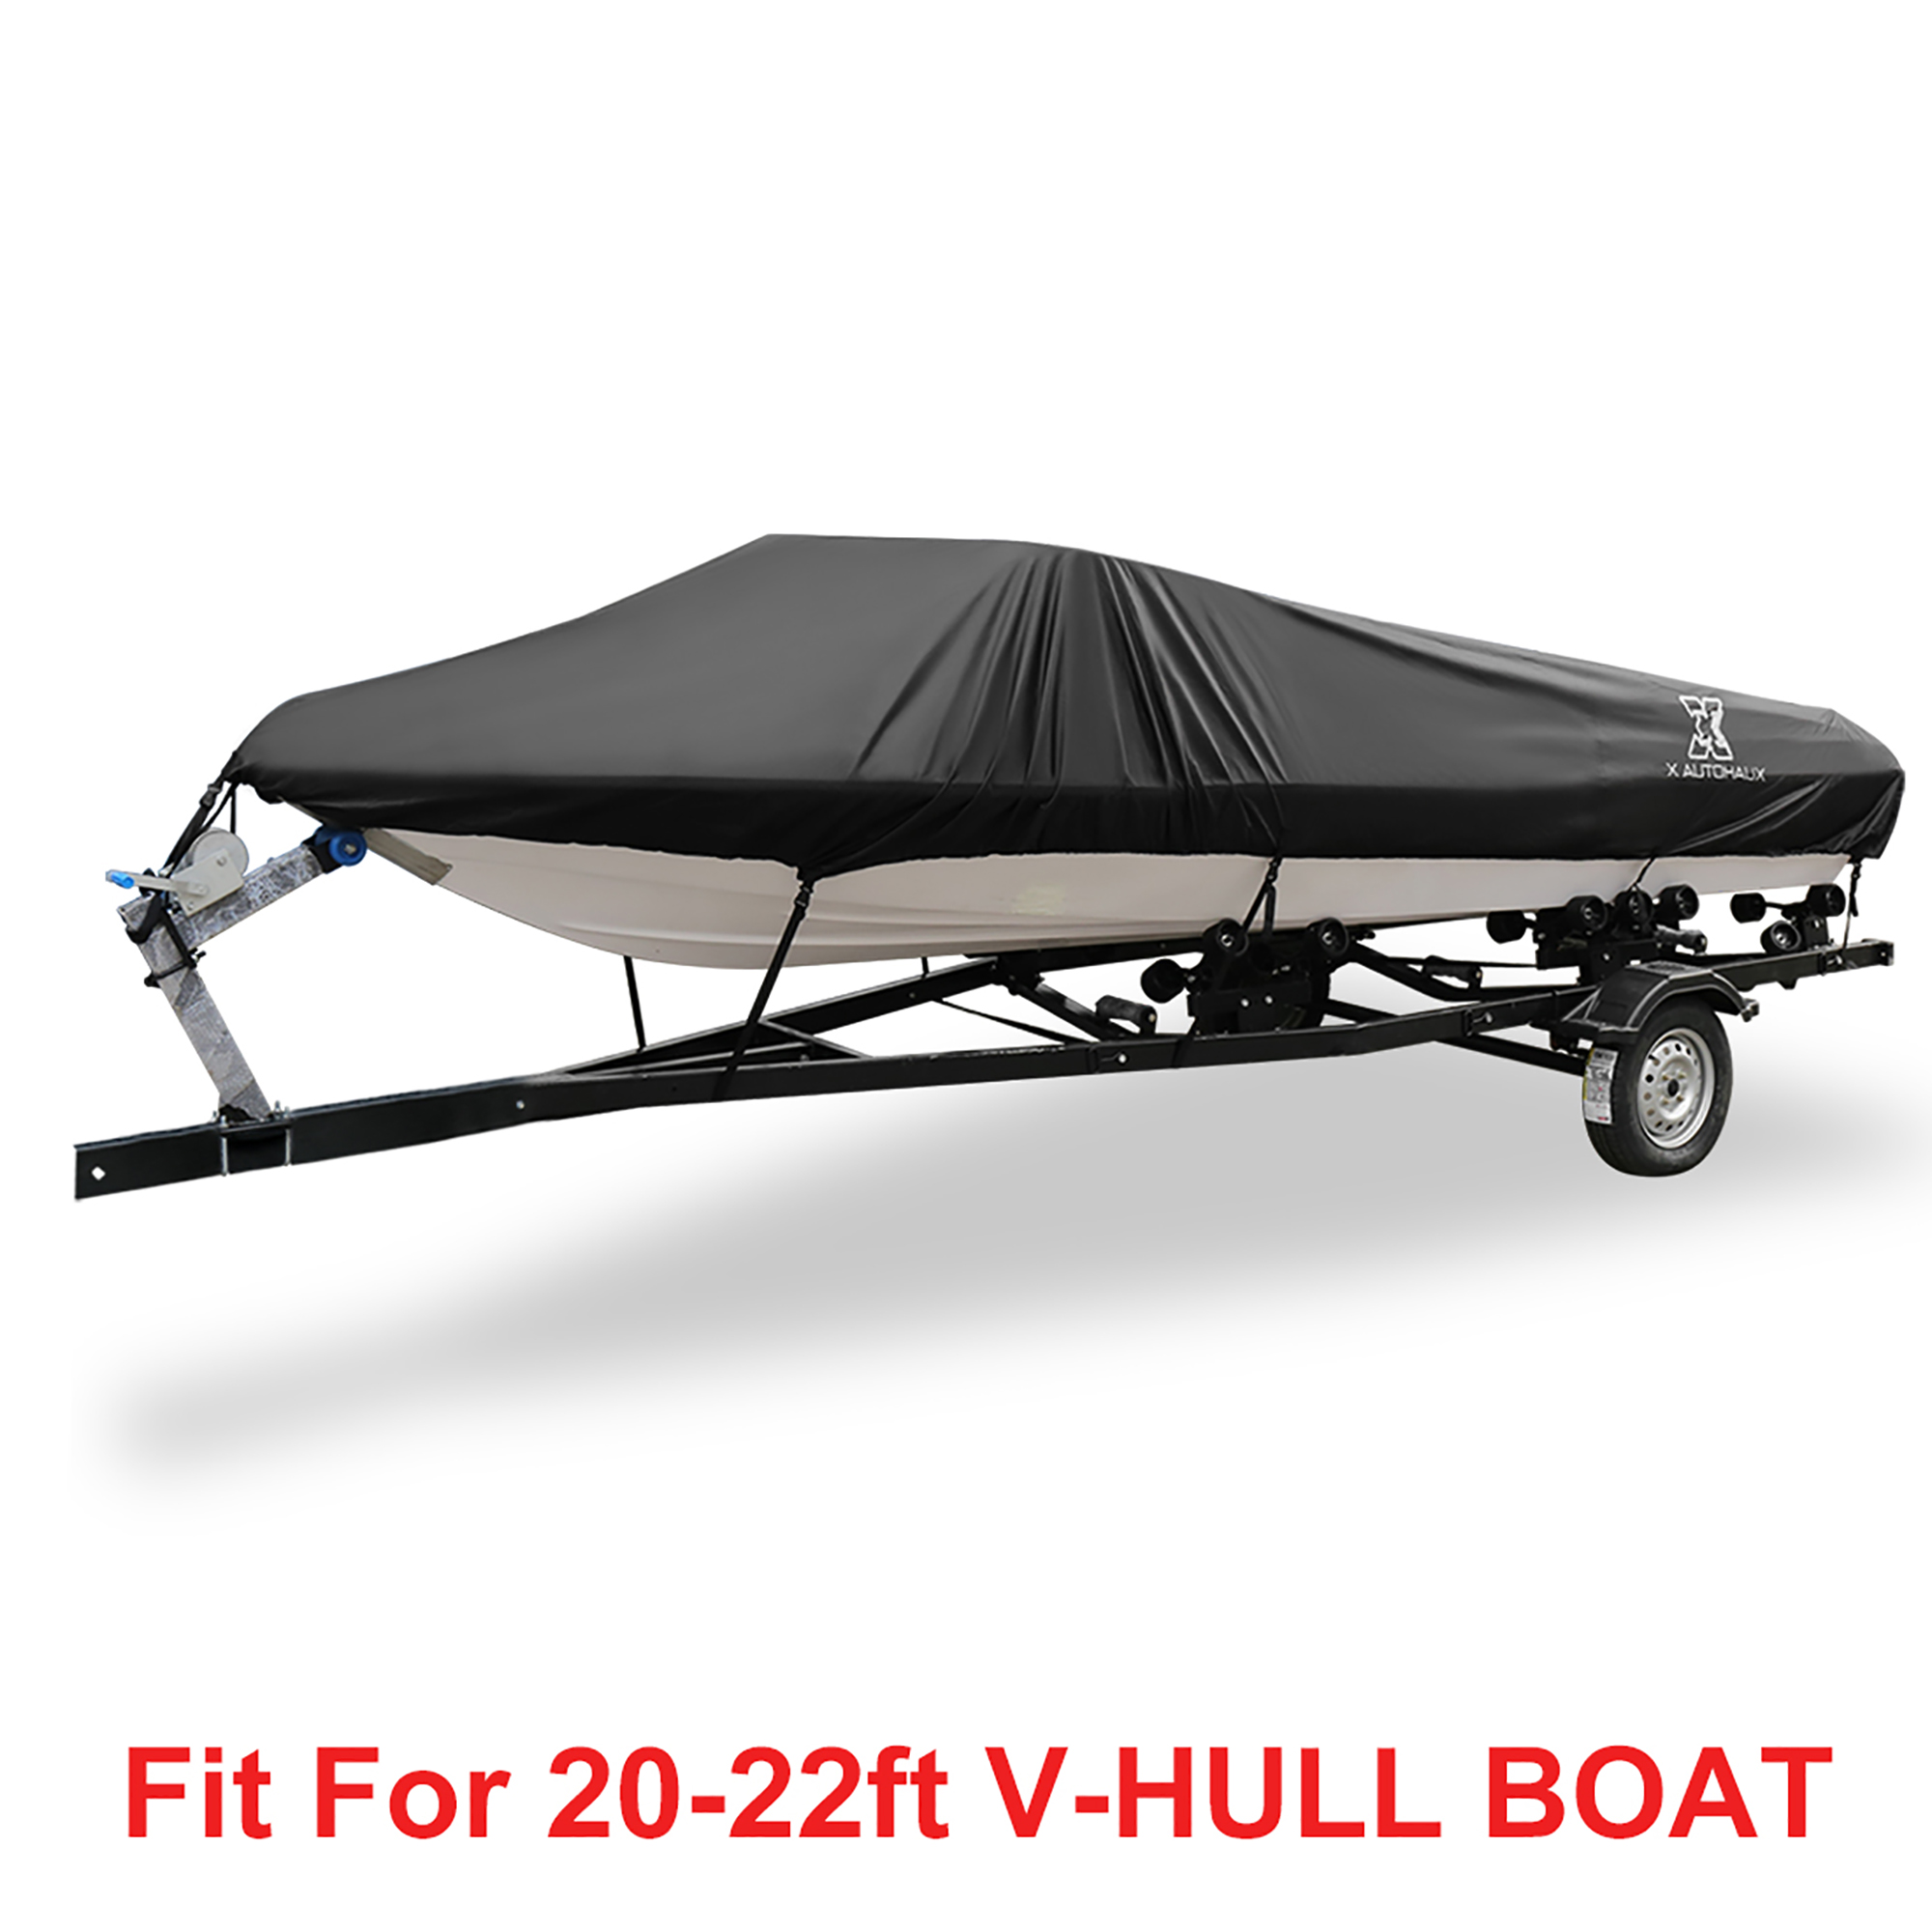 300D Polyester PU Boat Cover 14/' 16/' 18/' 19/' 20/' Waterproof For V-Hull Tri-Hull